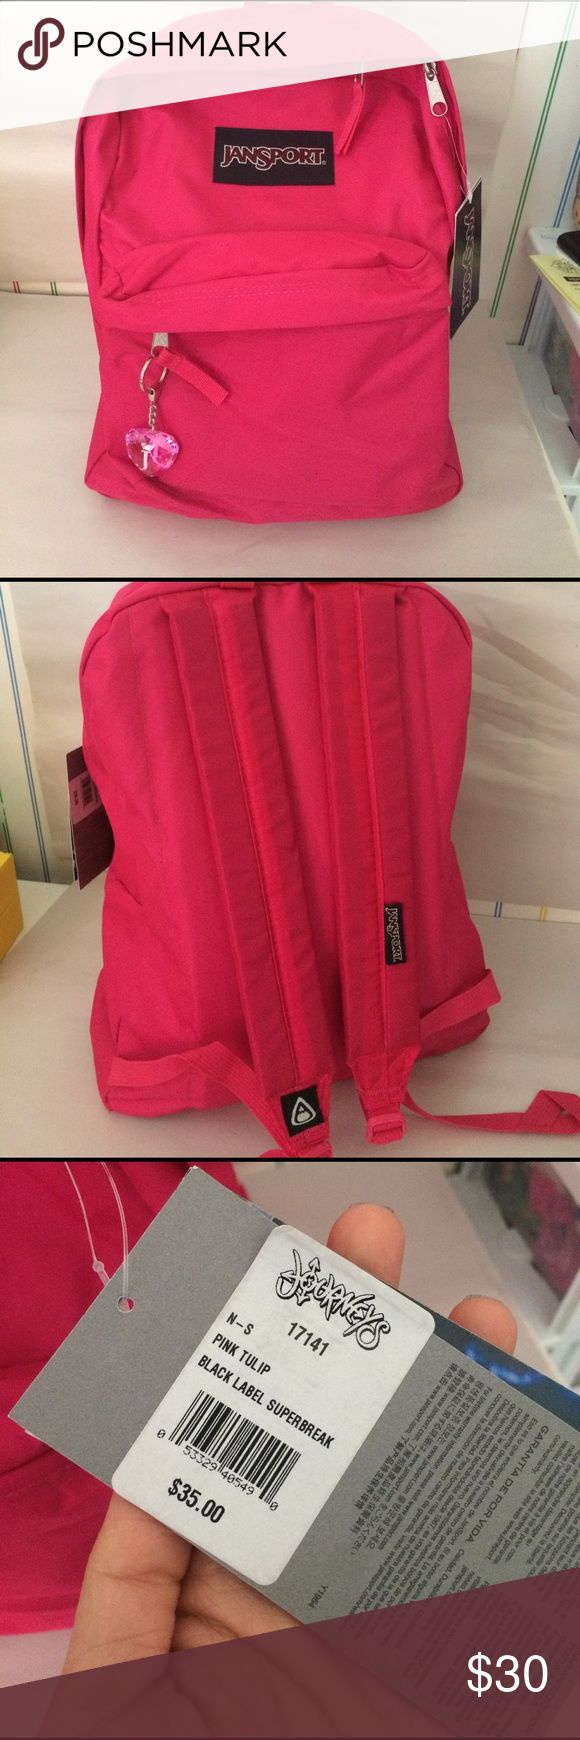 Jansport A brand new pink Jansport backpack . Adjustable straps and an outer pocket. Comes with a life time warranty. Also included are  iron-appliqués as well as a heart shaped keychain to add a personal touch 😊 Jansport Bags Backpacks